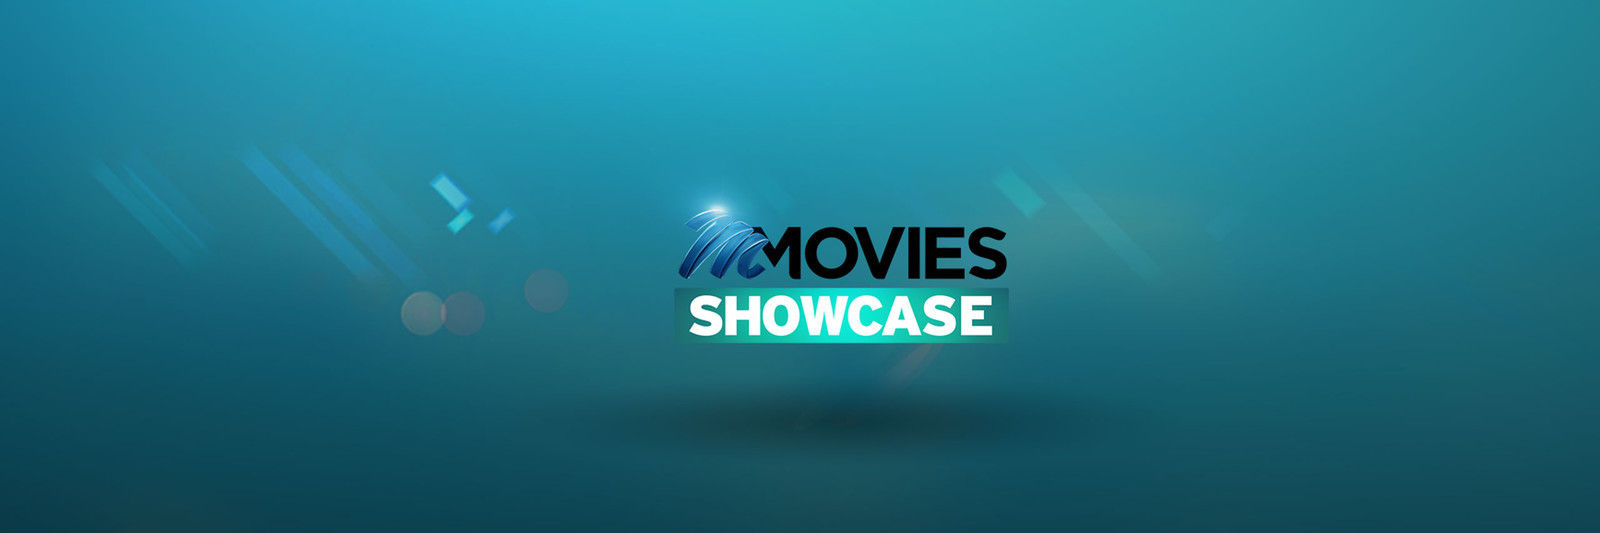 27 showcase channel billboard 005 pre